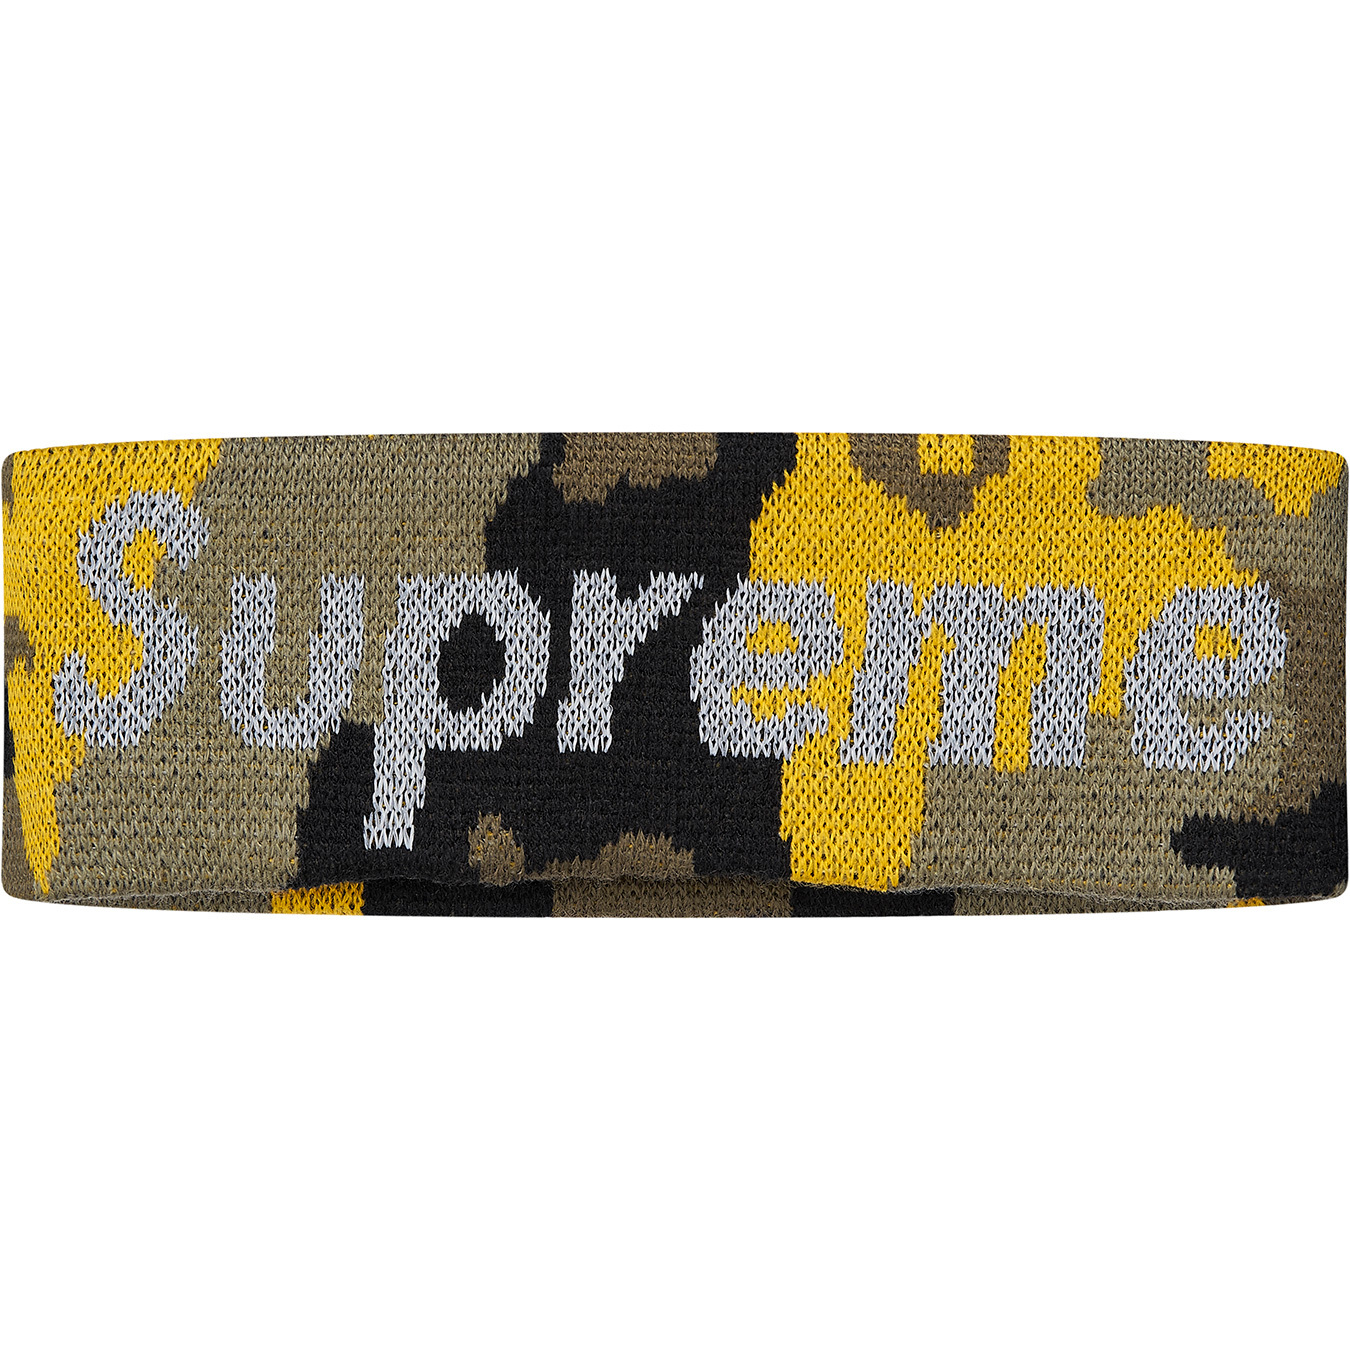 supreme-2017aw-fall-winter-new-era-reflective-logo-headband